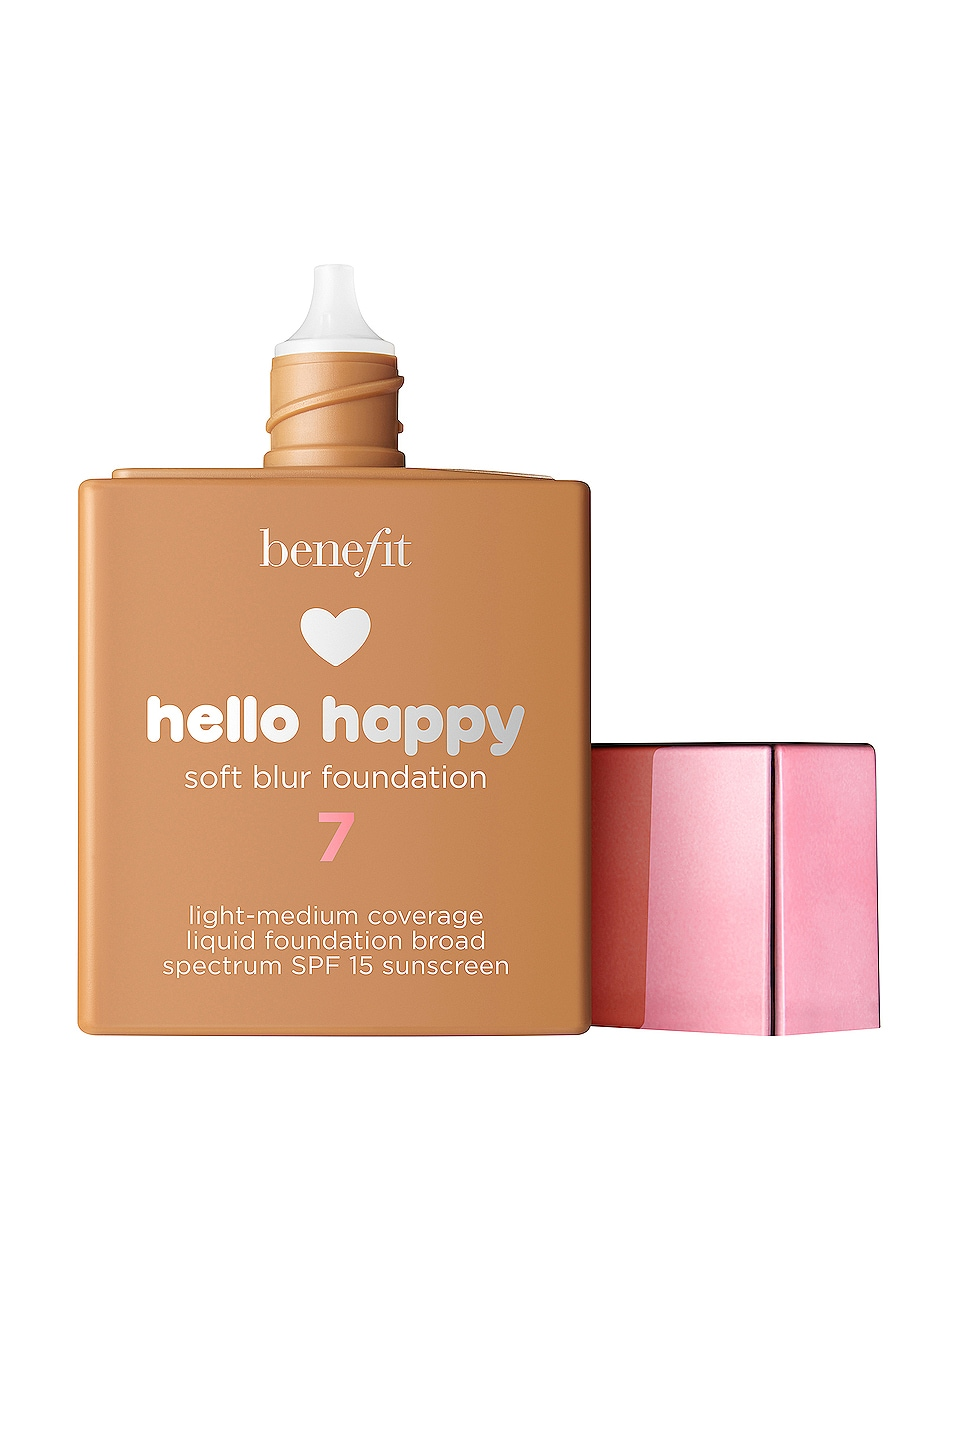 Benefit Cosmetics Hello Happy Soft Blur Foundation in Shade 07